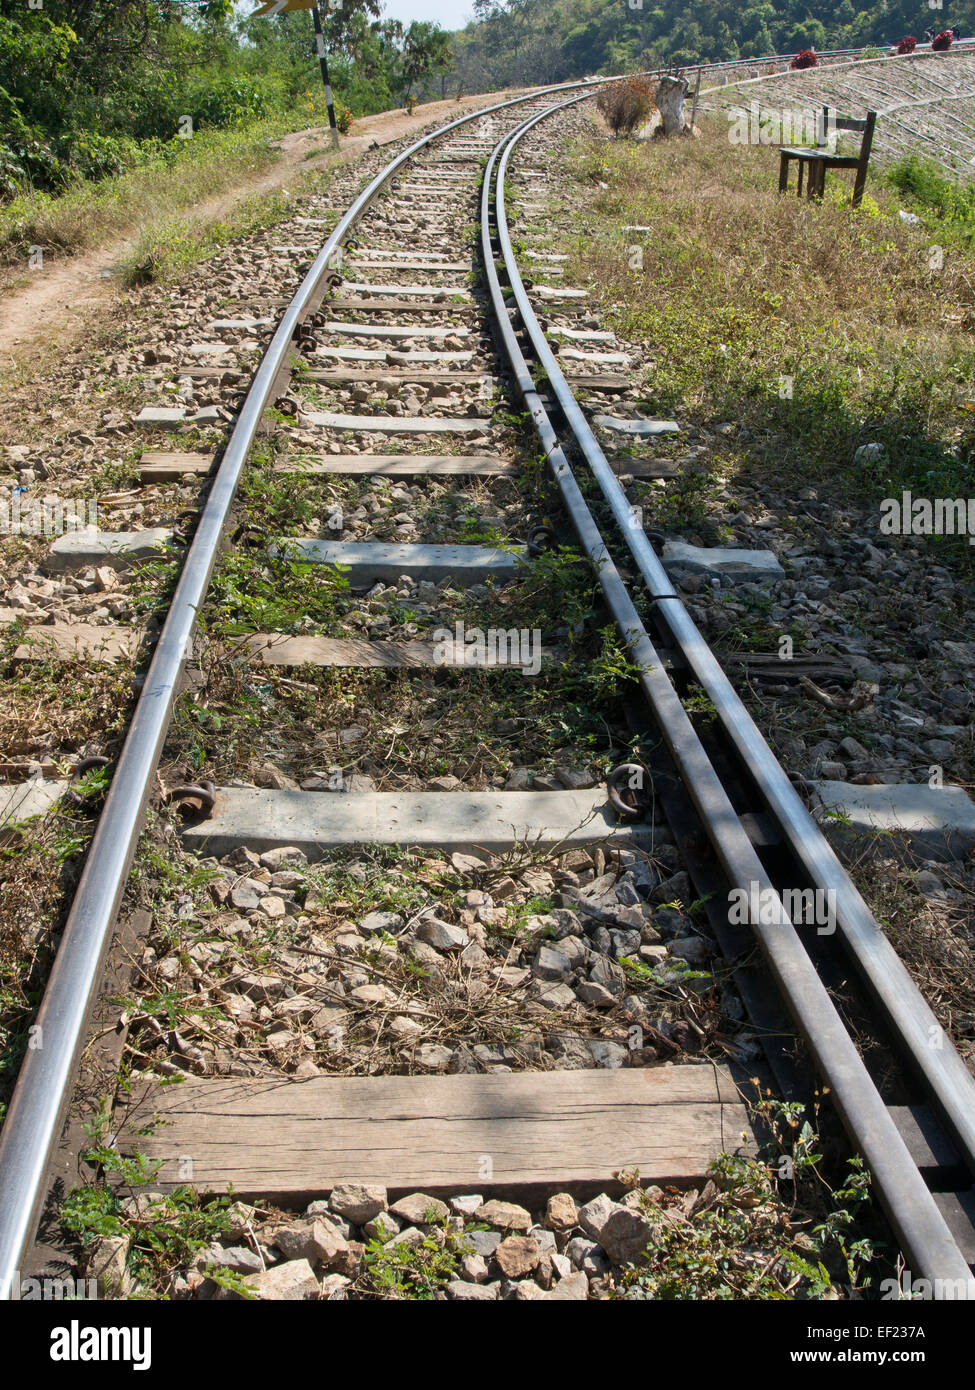 Section of the historical Burma Railway, also known as the Death Railway, near Heho, Shan state, Myanmar - Stock Image